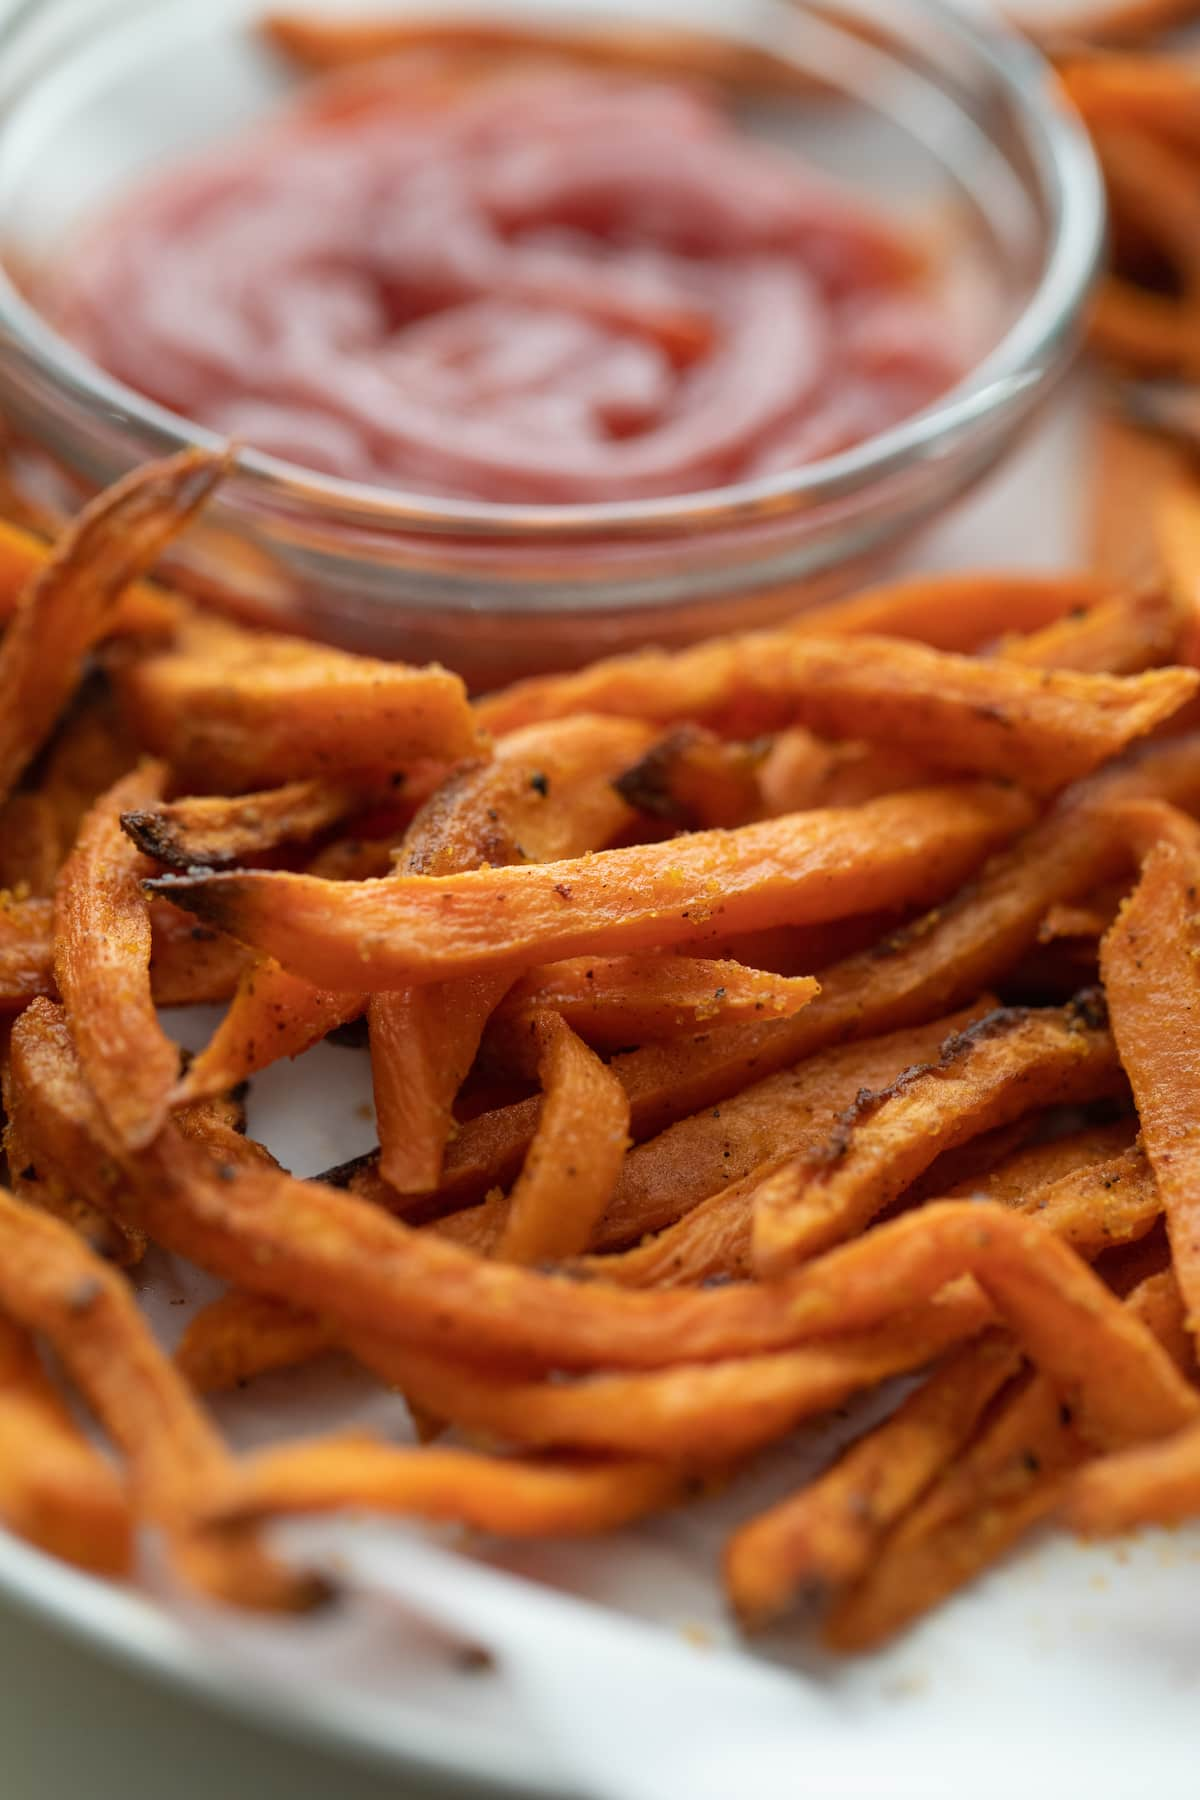 sweet potato fries on plate with ketchup